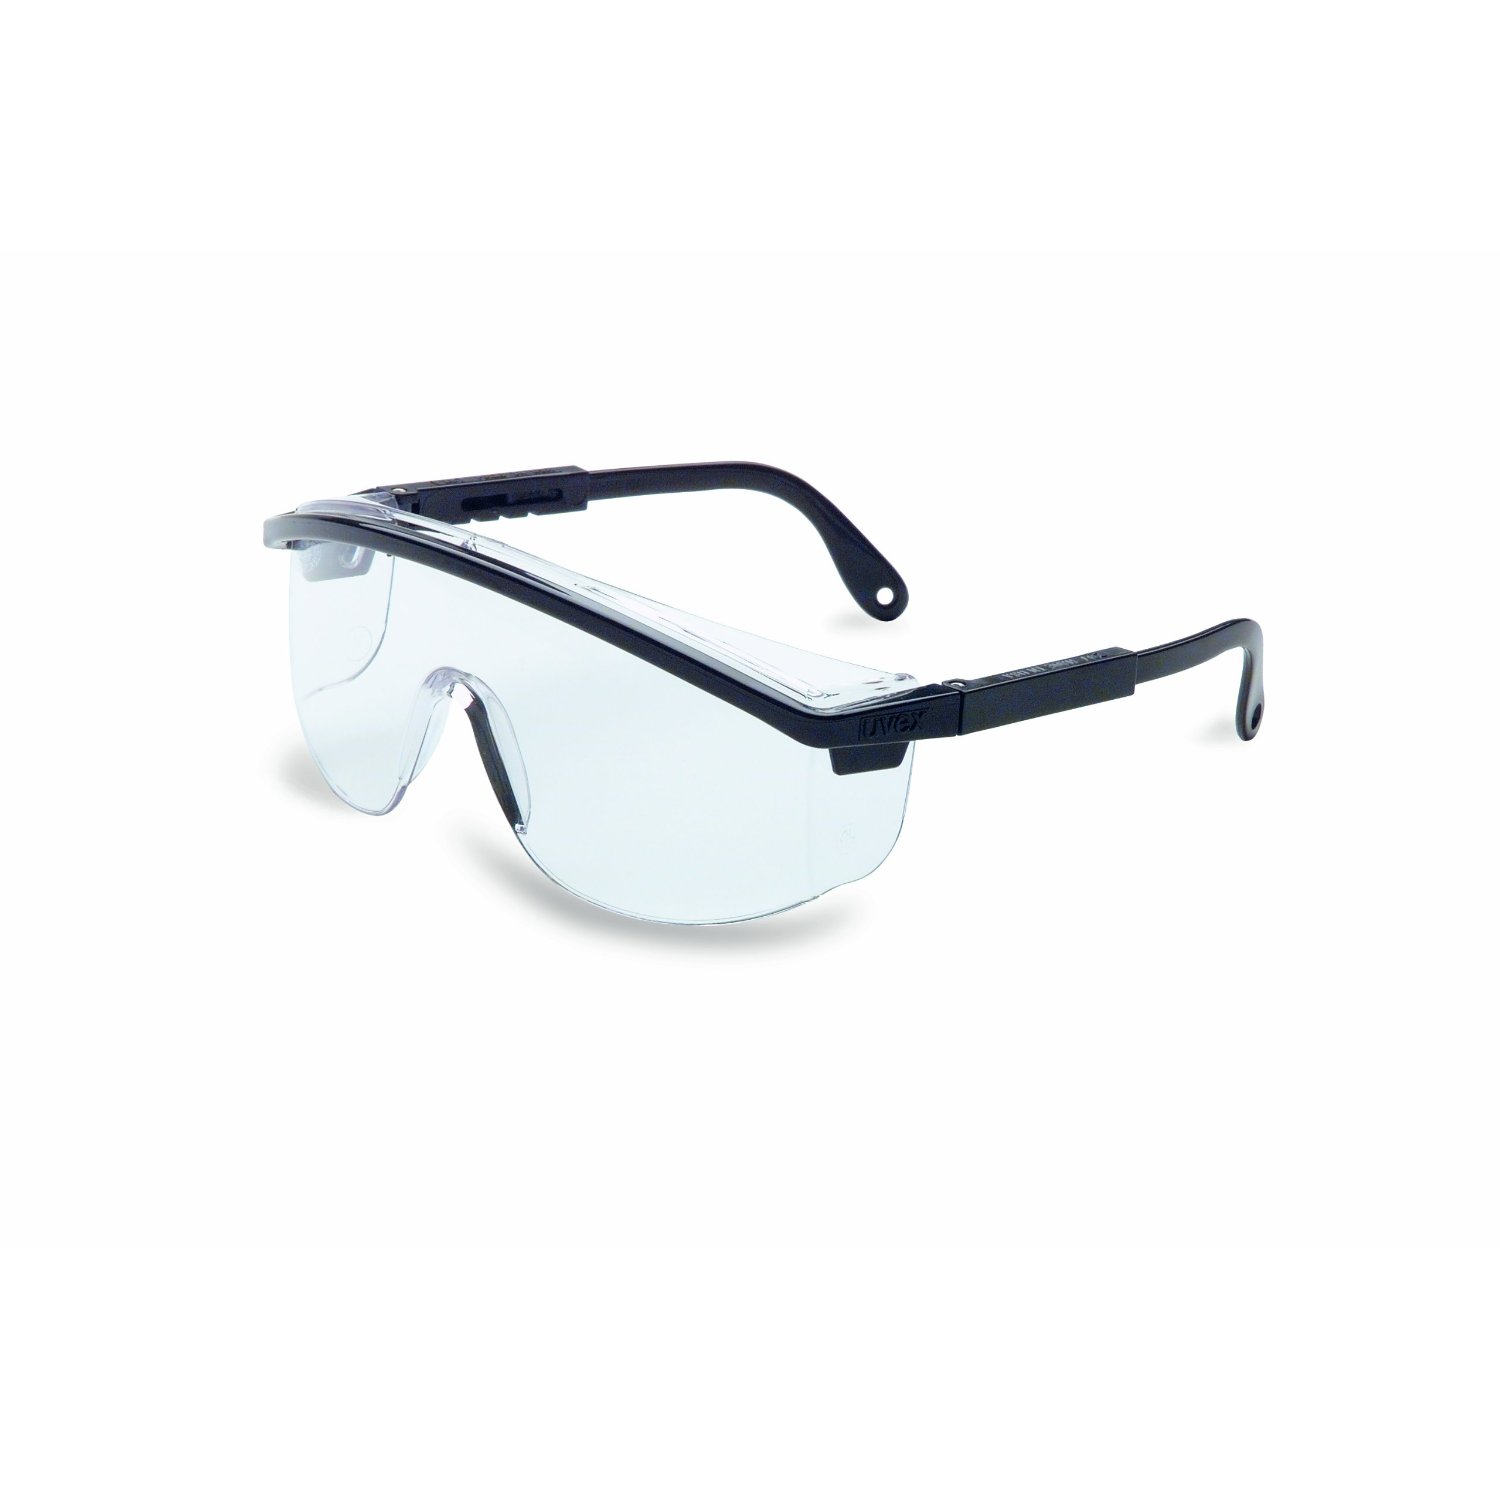 Uvex S135C Astrospec 3000 Safety Eyewear, Black Frame, Clear UV Extreme Anti-...